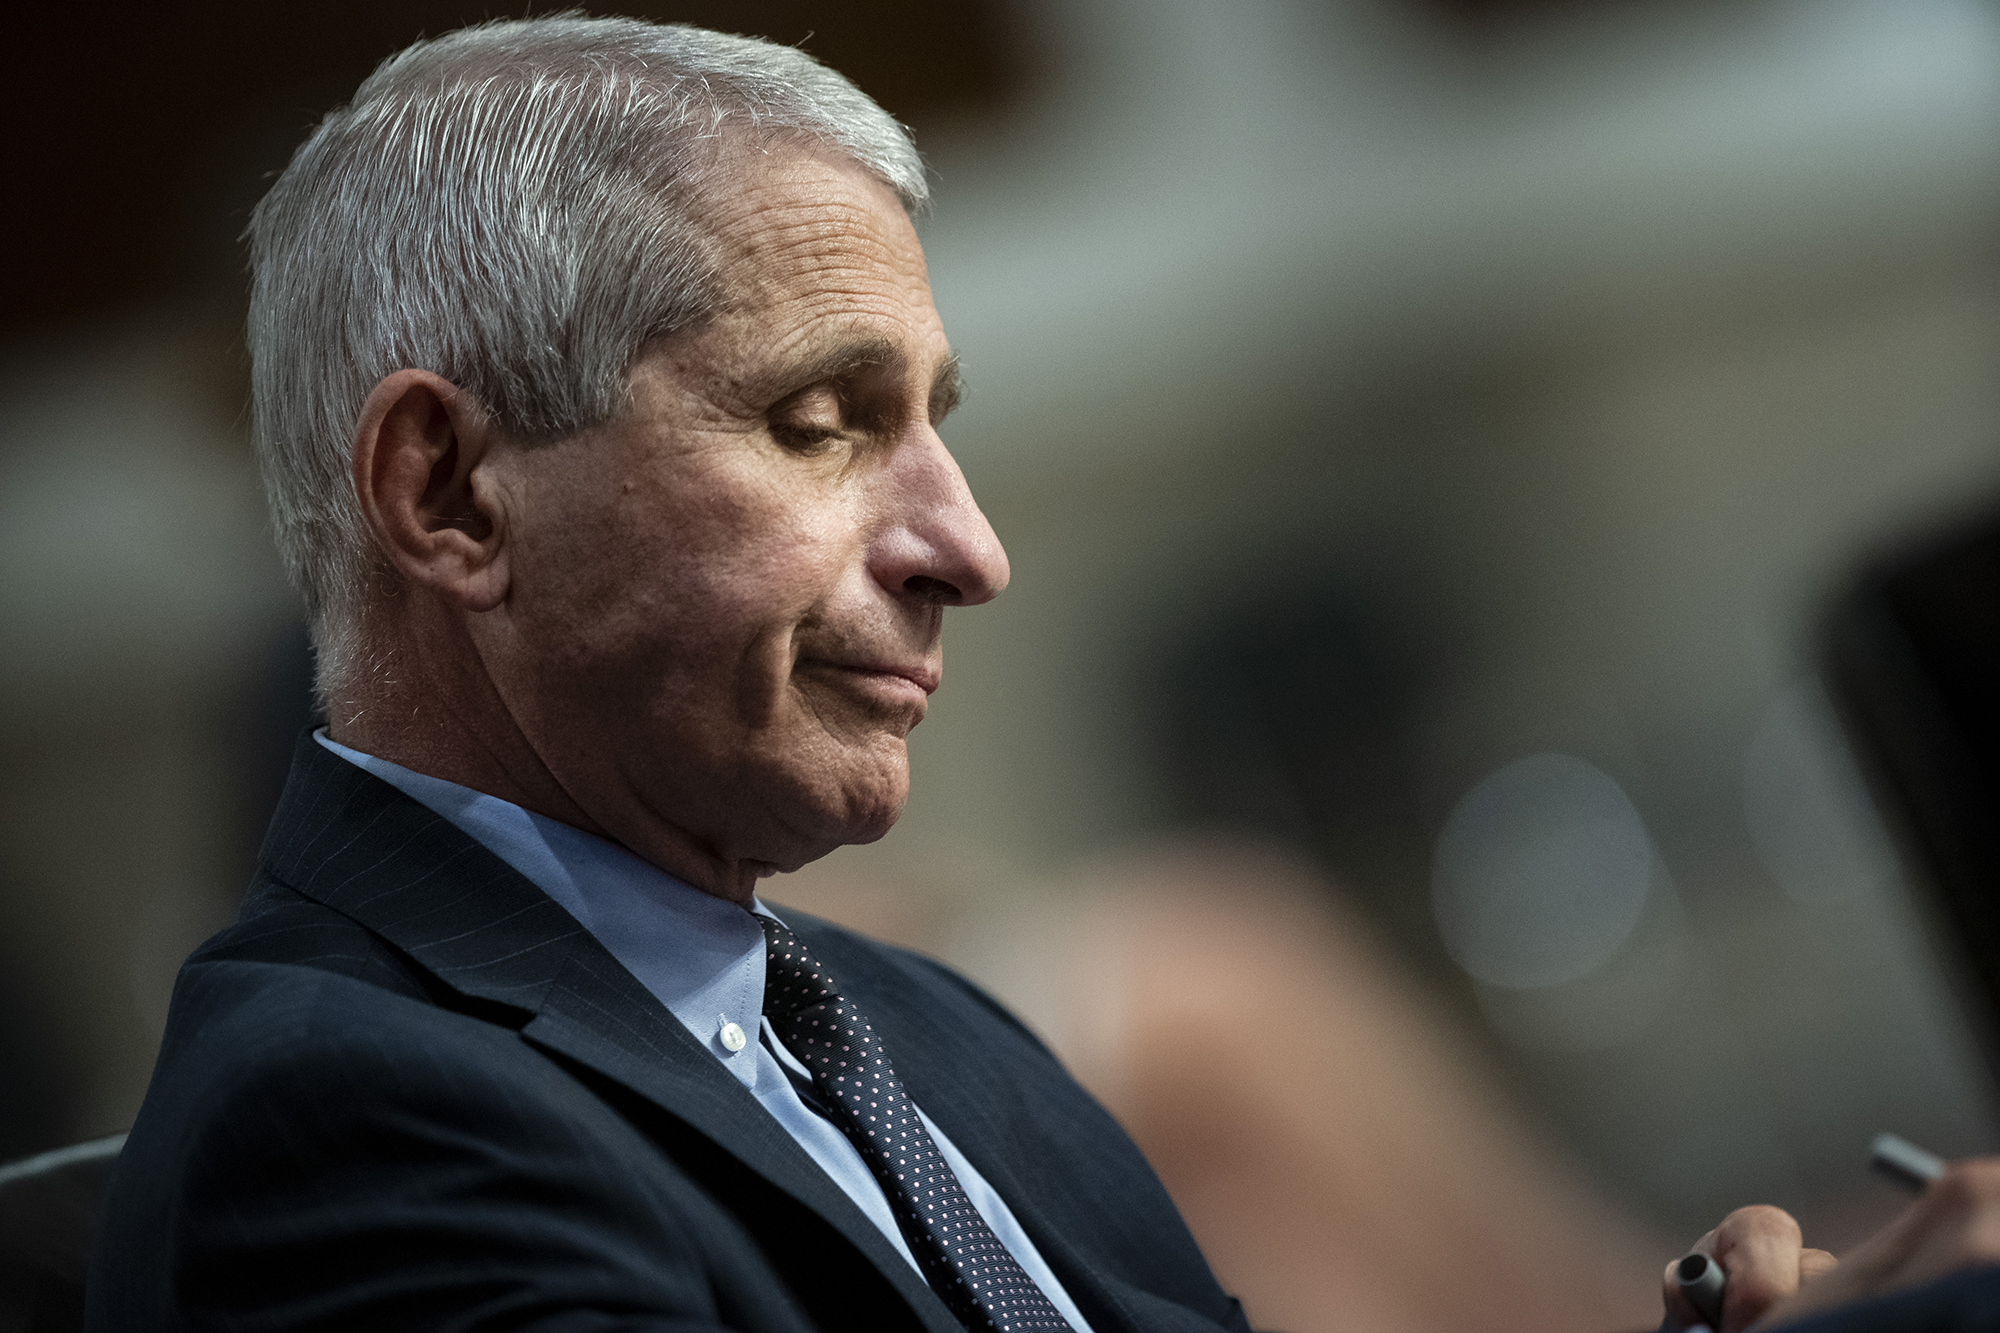 Fauci warns of 'larger outbreak forward' for coronavirus in US